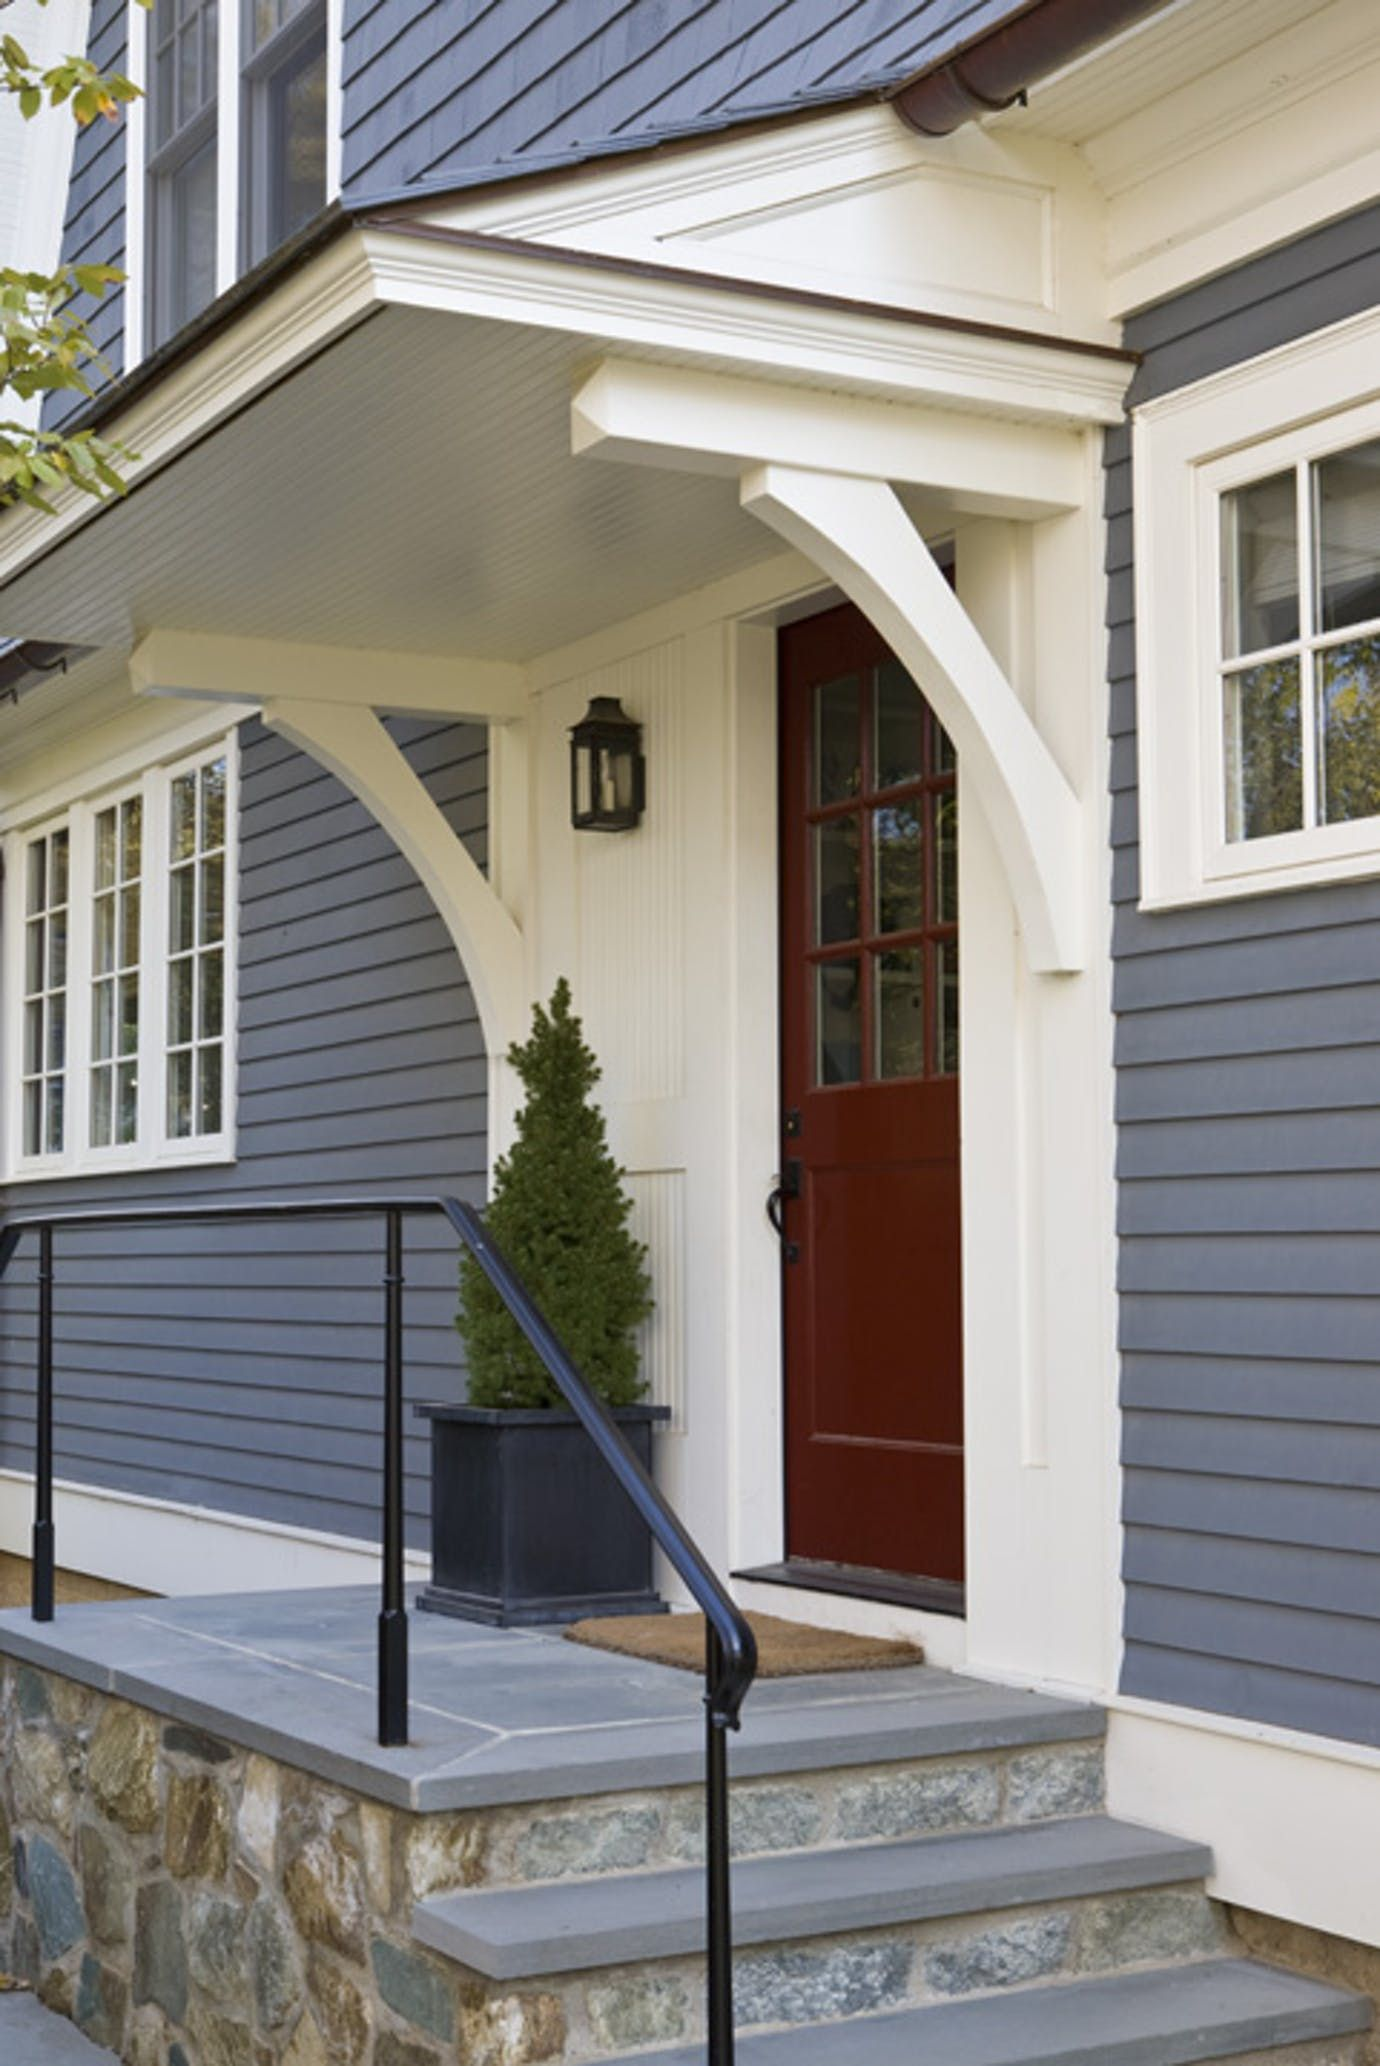 Lovely Side Door Detail Shingle Style Entryway Front Facade By Anne Decker  Architects